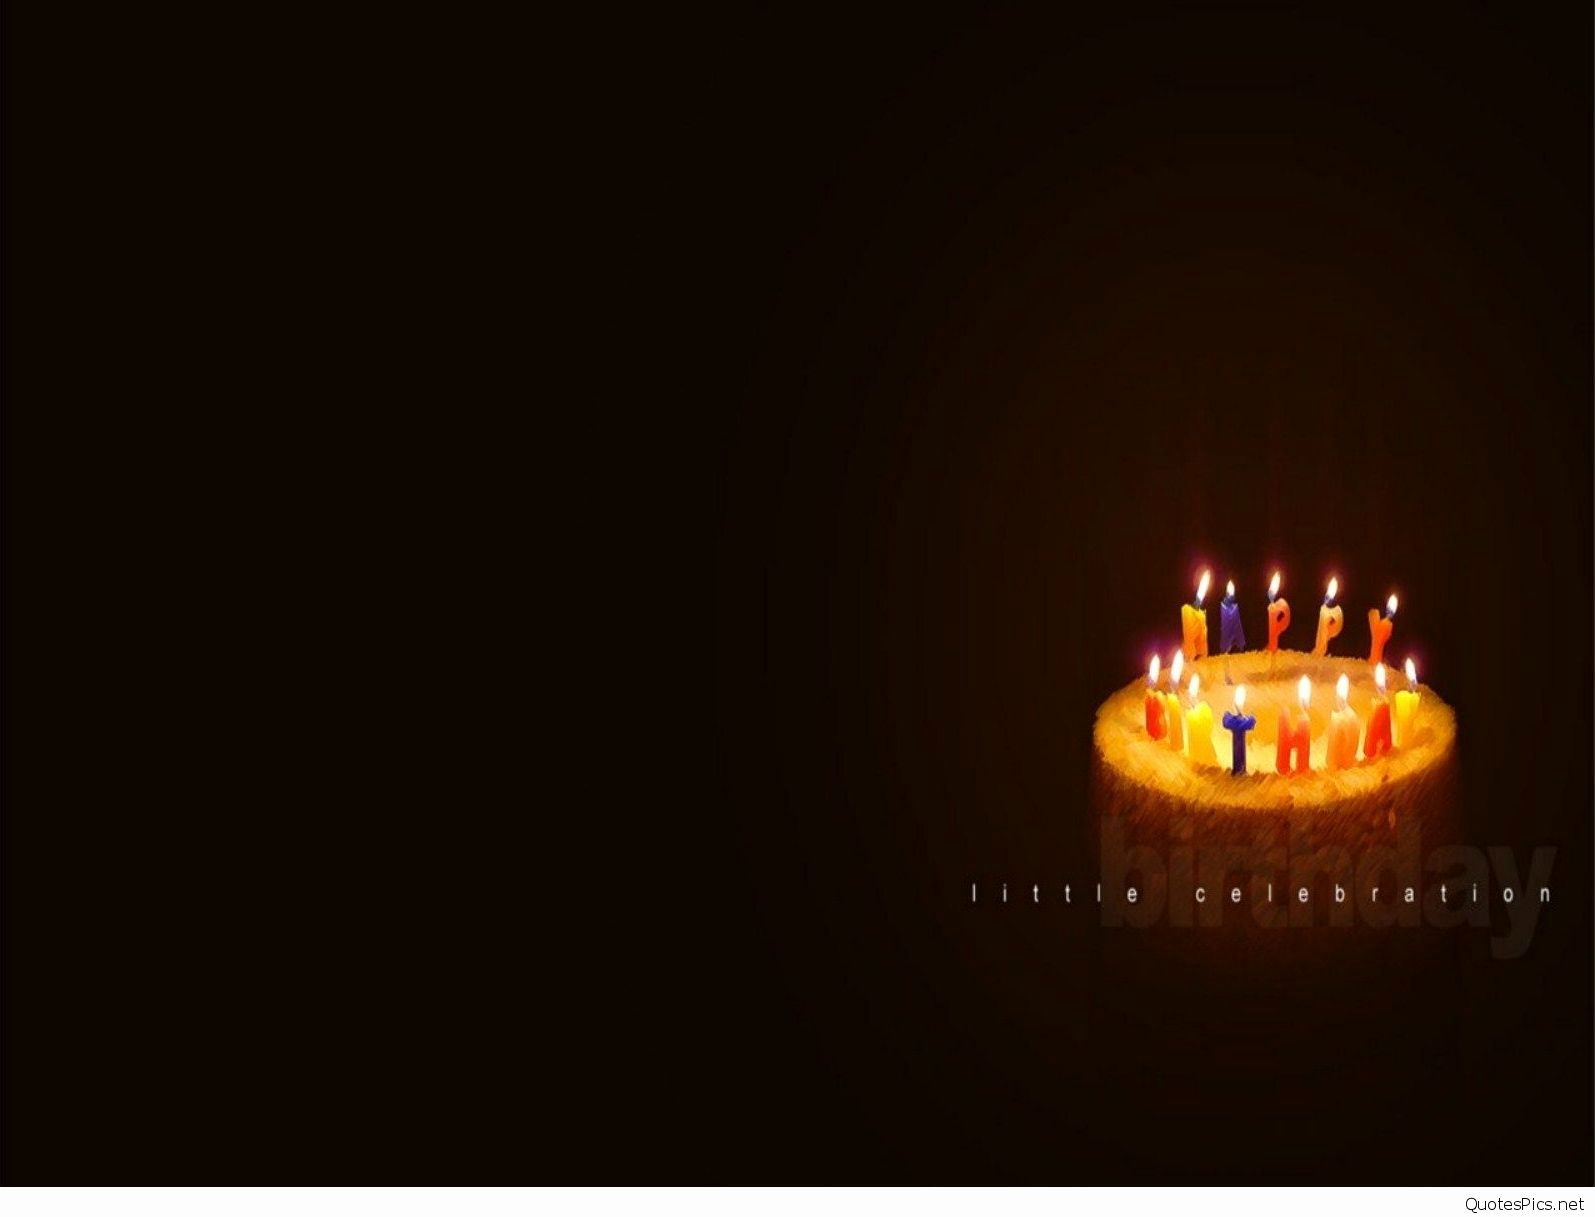 Happy Bday Wallpapers Free Luxury Birthday Cards Quotes and Birthday Wishes Wallpapers